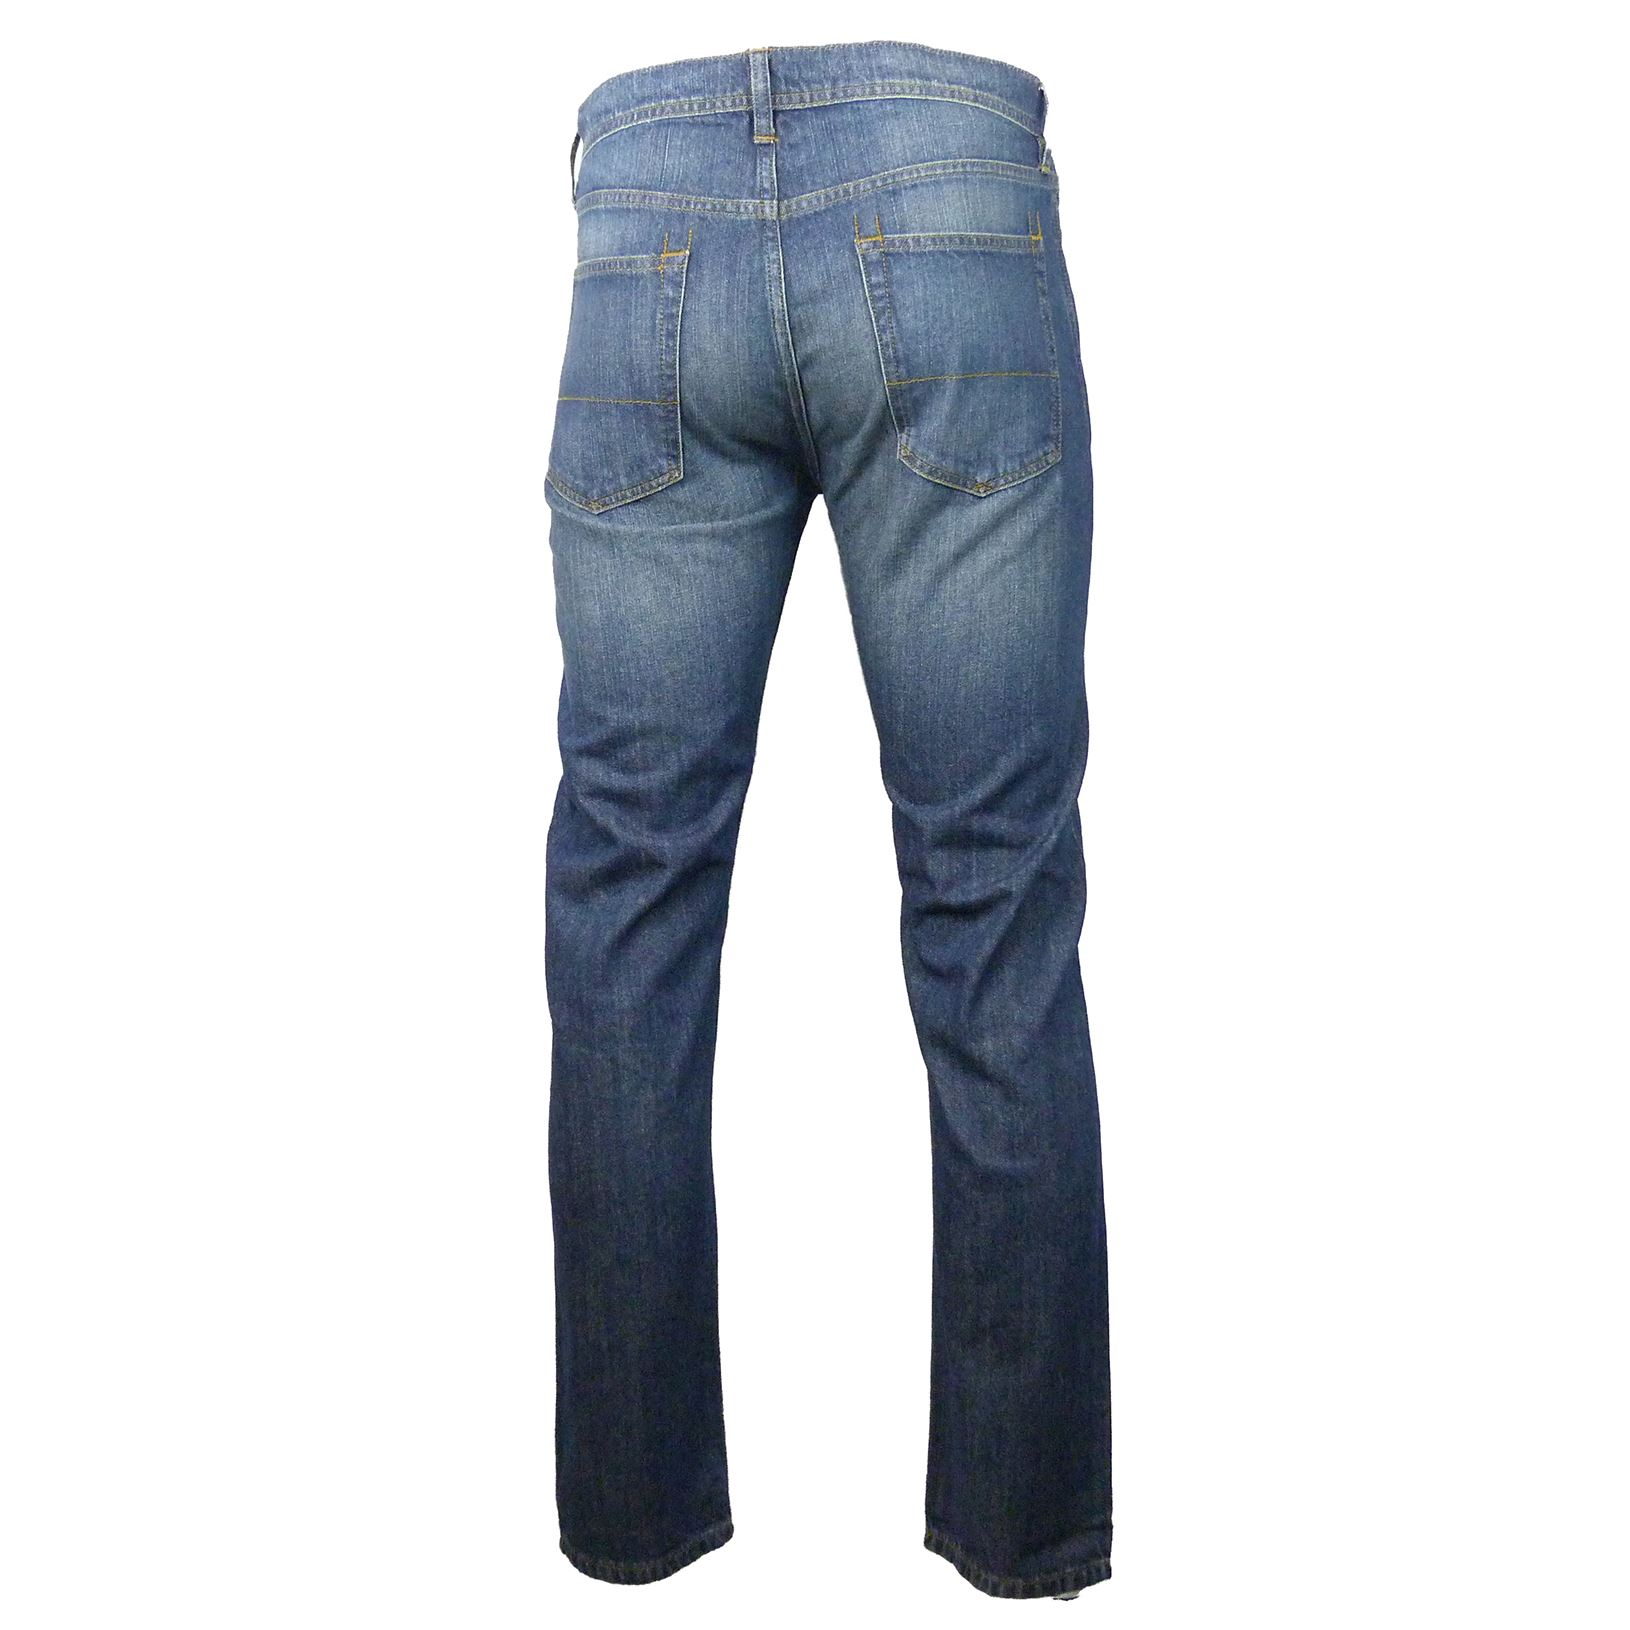 EX-M-amp-S-Marks-And-Spencer-Relaxed-Fit-Denim-Jeans thumbnail 5